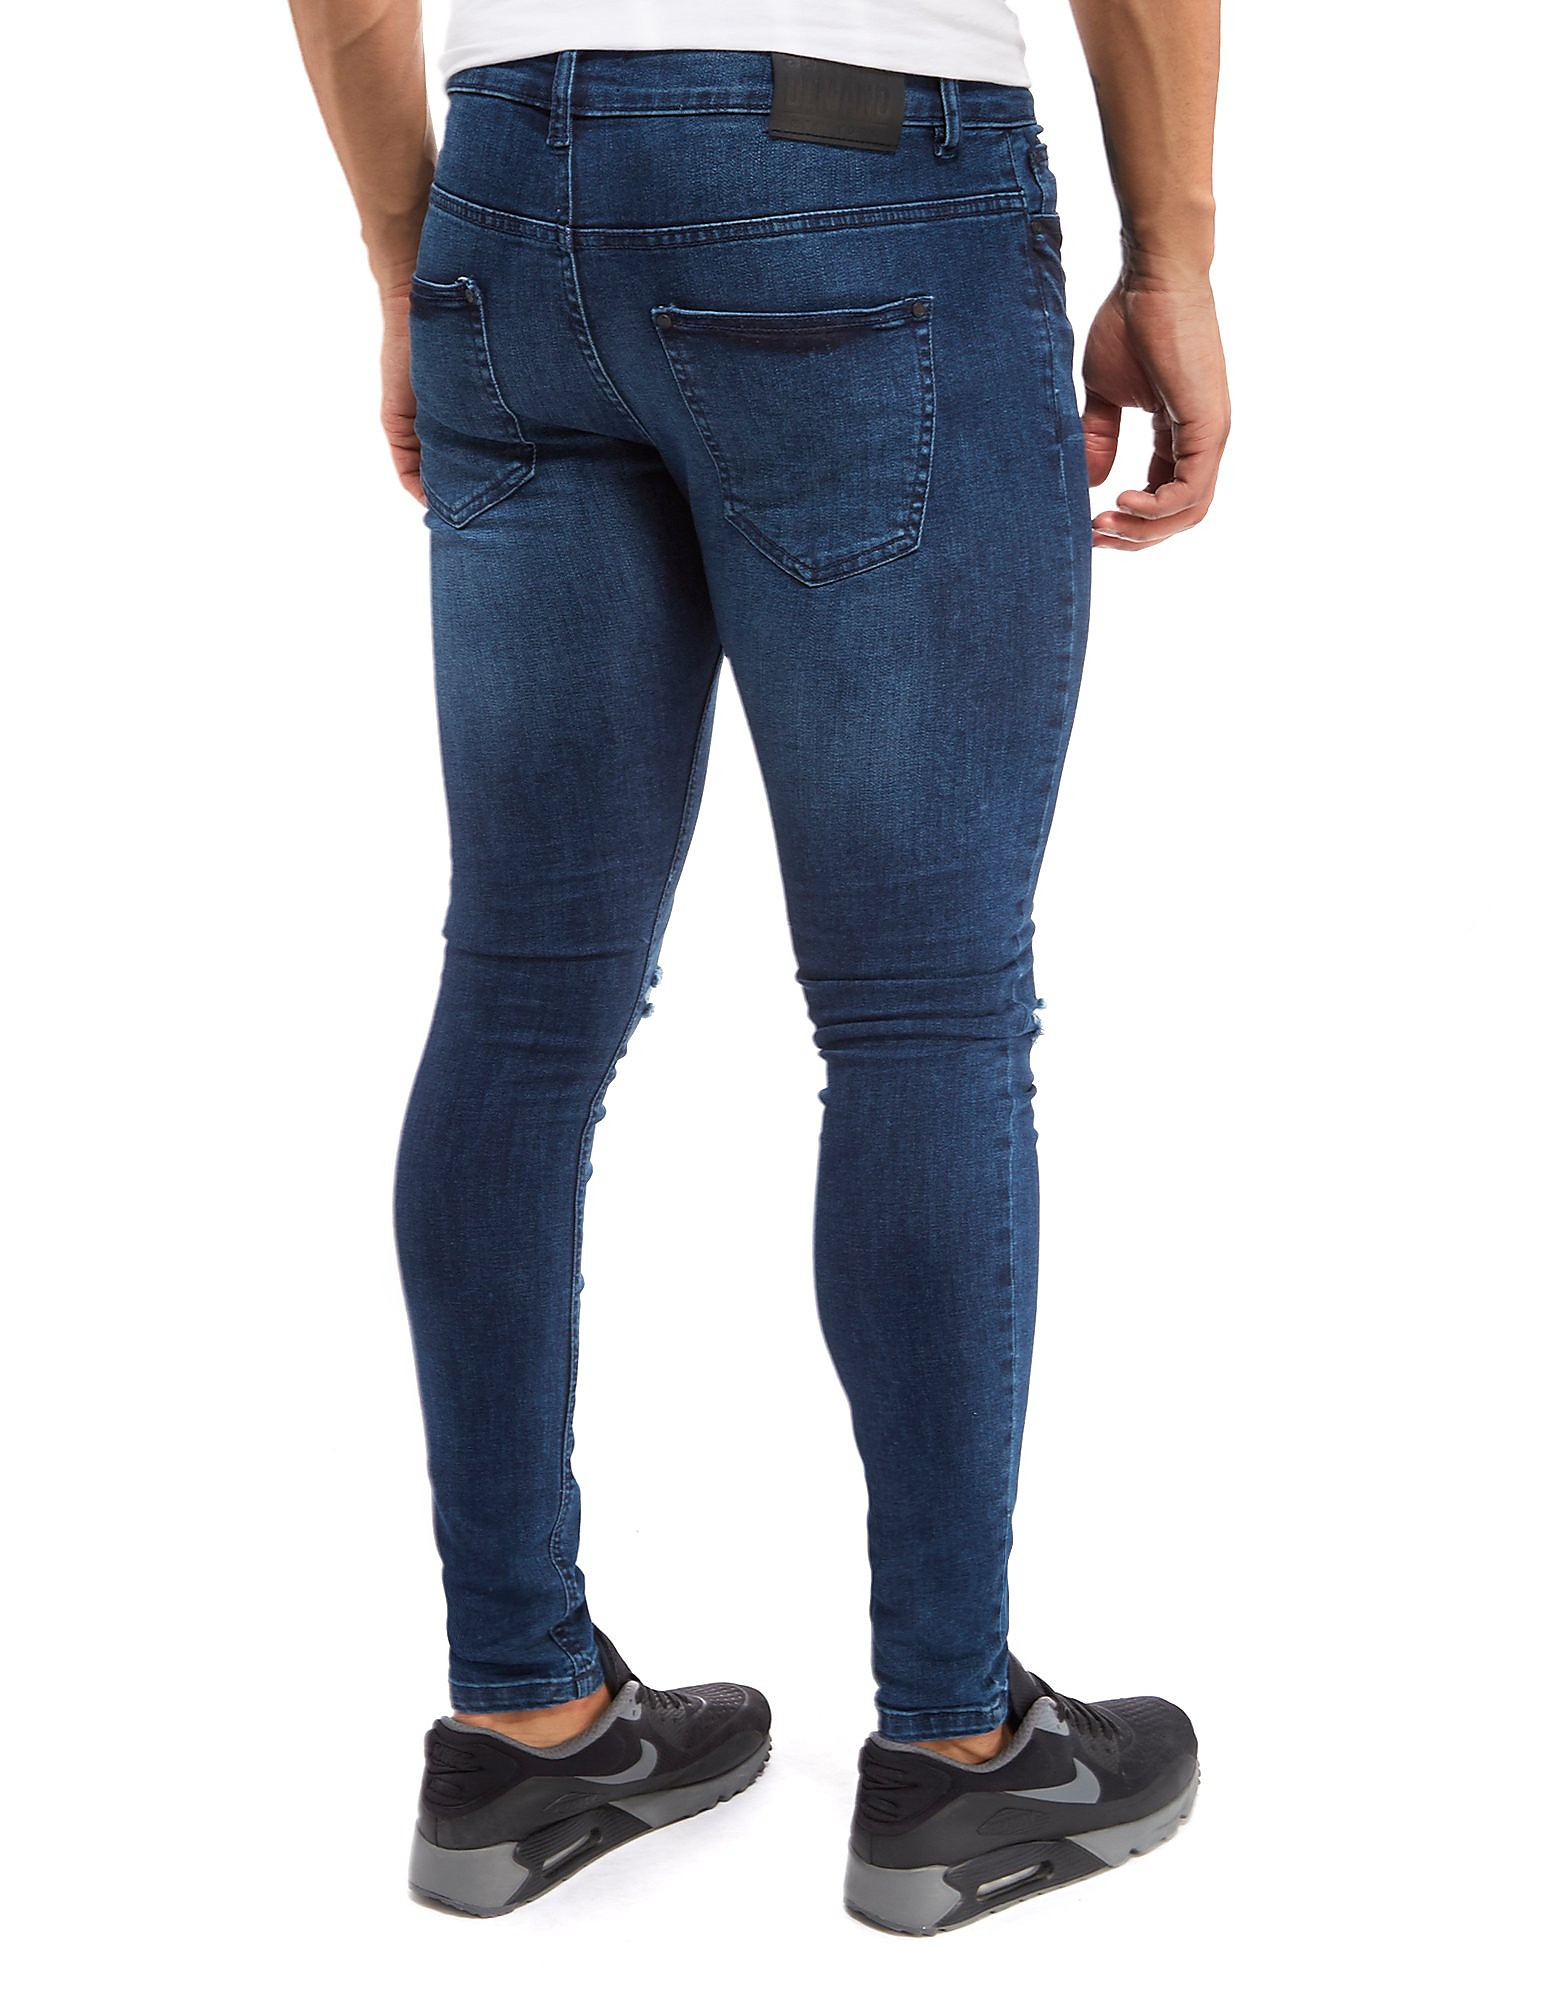 Supply & Demand Skyline Jeans